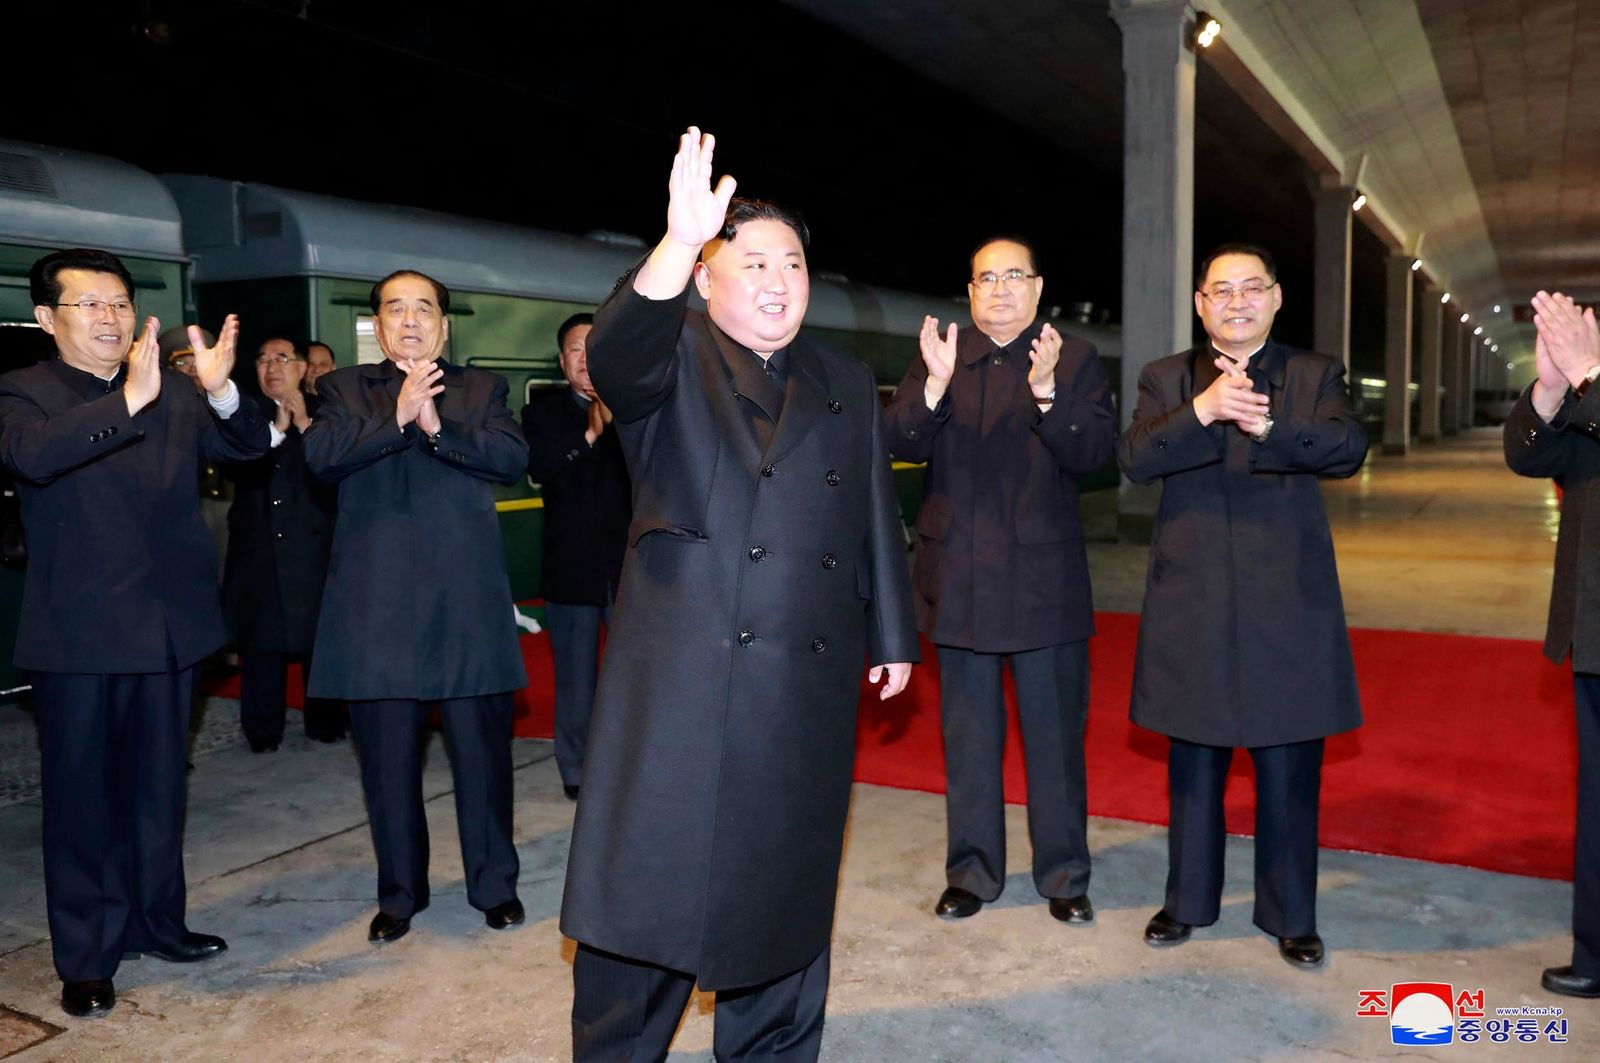 In this photo provided by the North Korean government, North Korean leader Kim Jong Un waves at an undisclosed train station in North Korea Wednesday, April 24, 2019, before leaving for Russia.{ } (Korean Central News Agency/Korea News Service via AP)